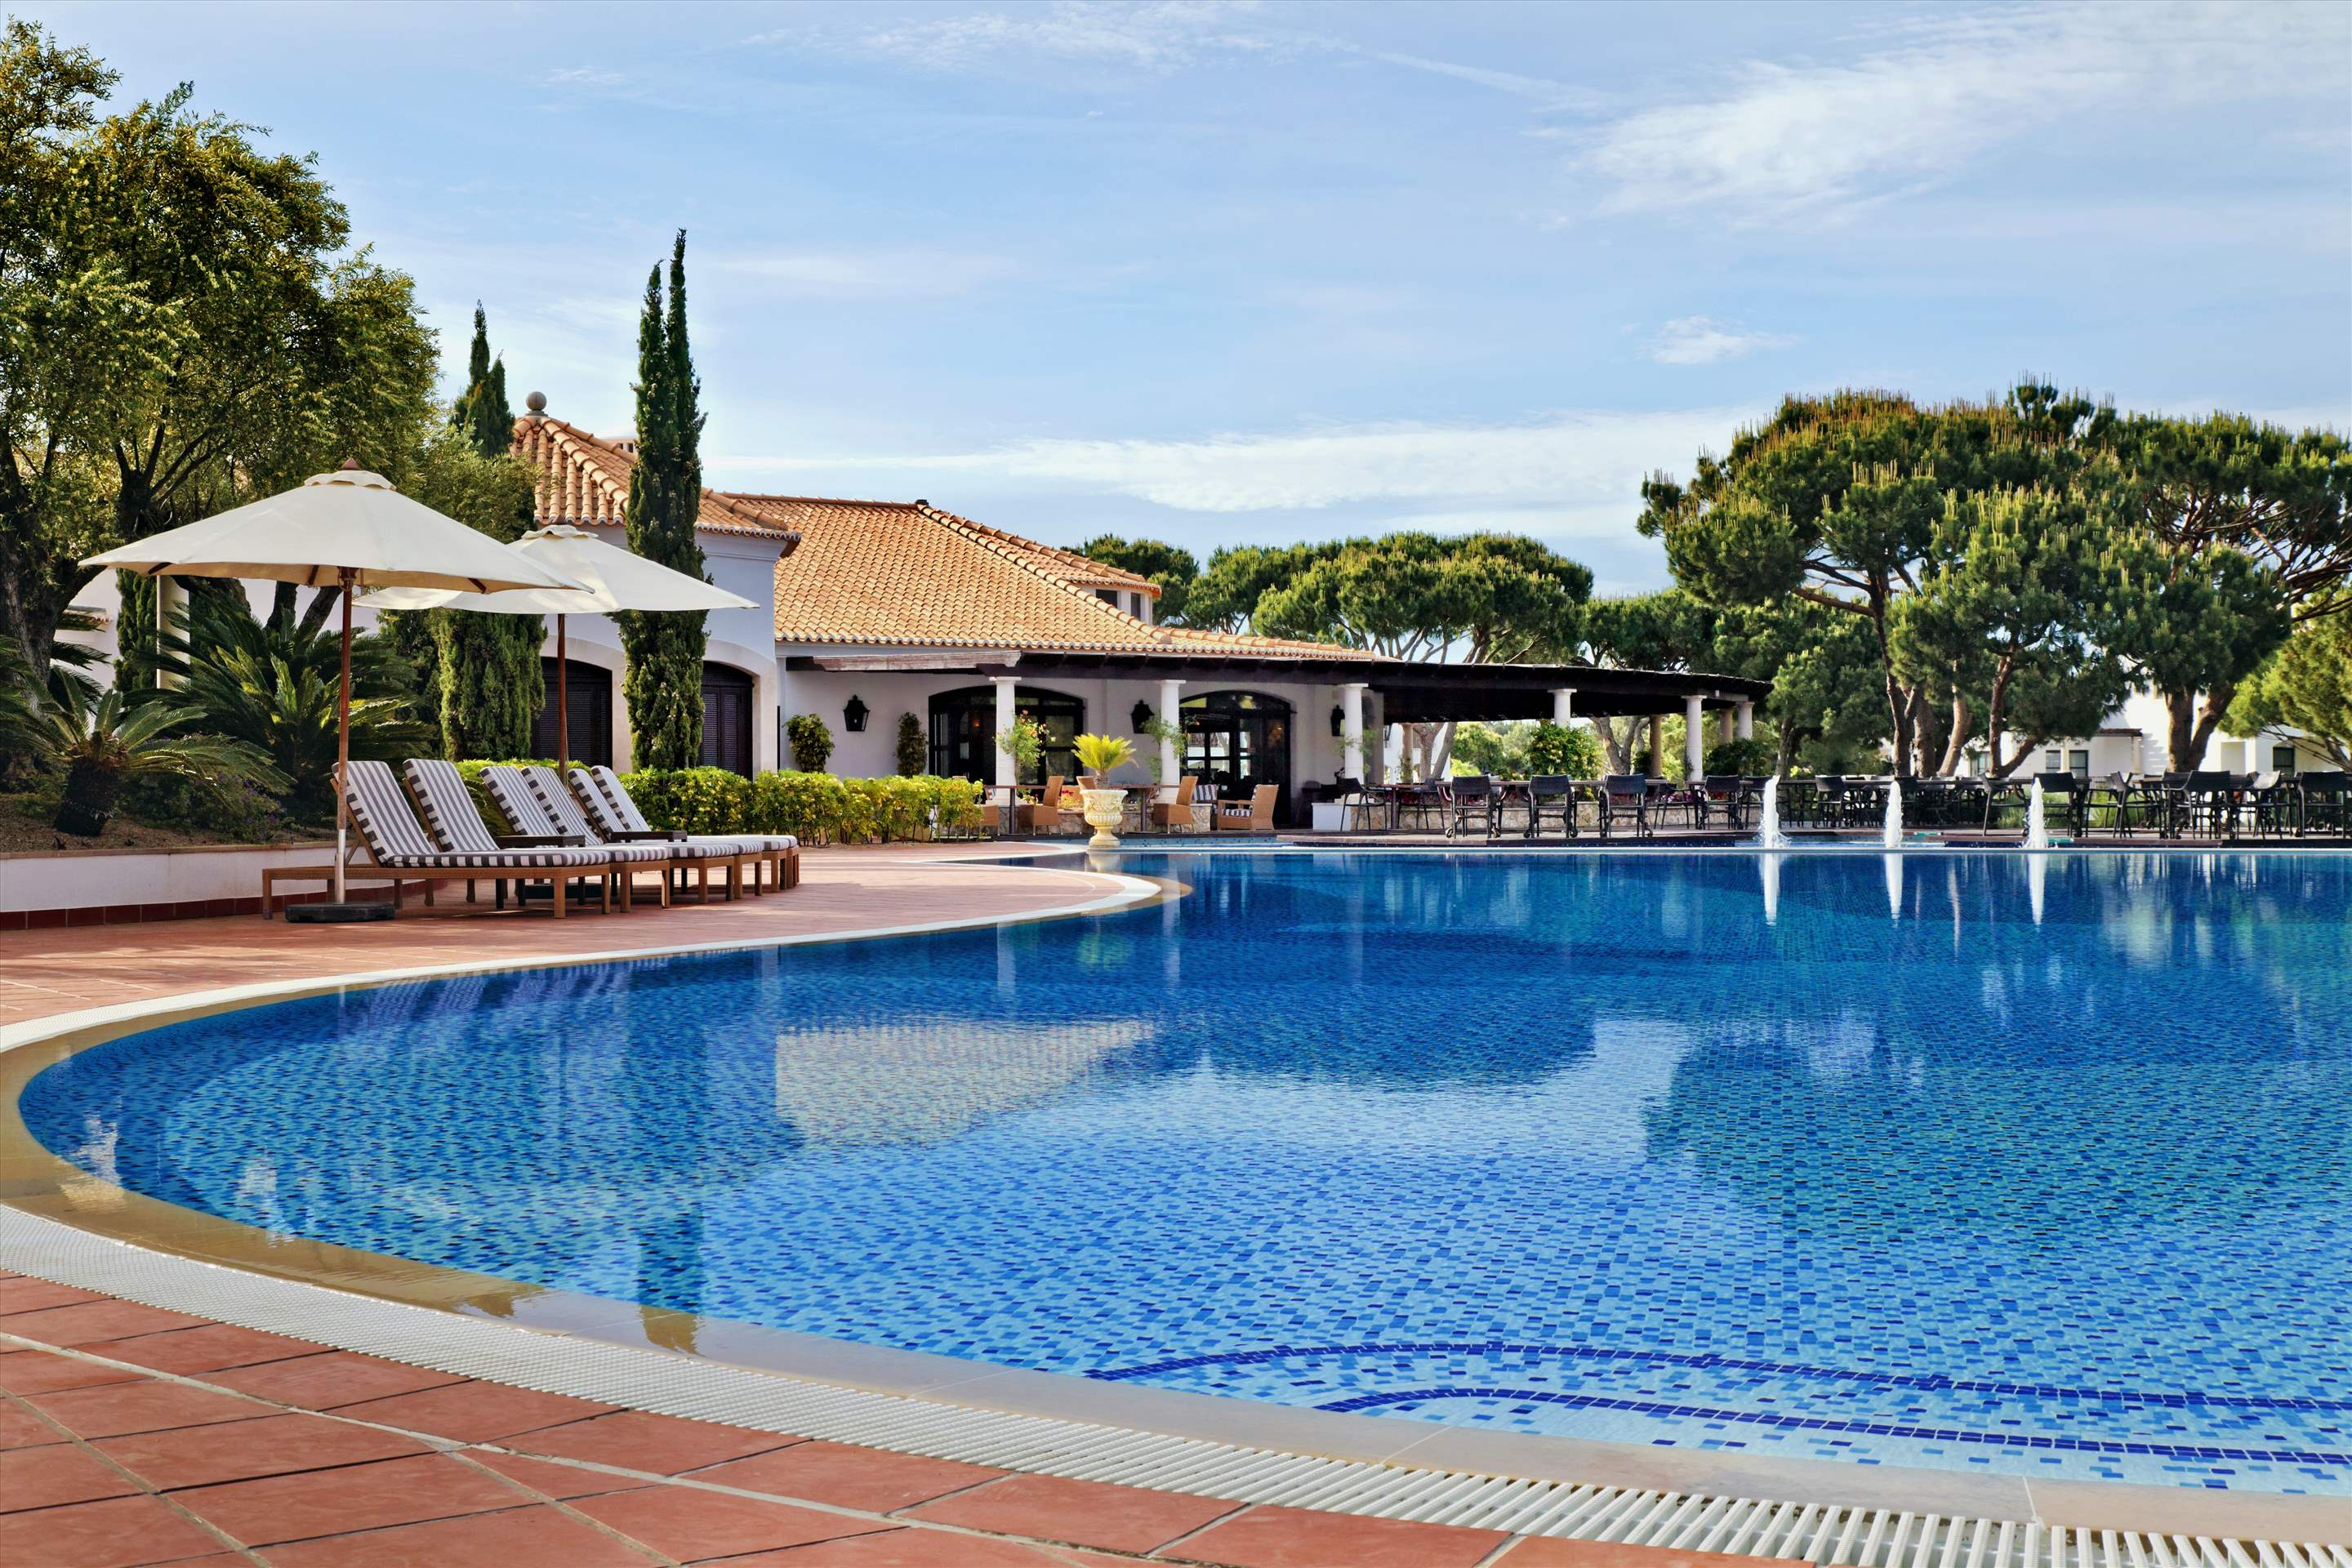 Pine Cliffs Residence, Penthouse 3 bed luxury suite, 3 bedroom apartment in Pine Cliffs Resort, Algarve Photo #2